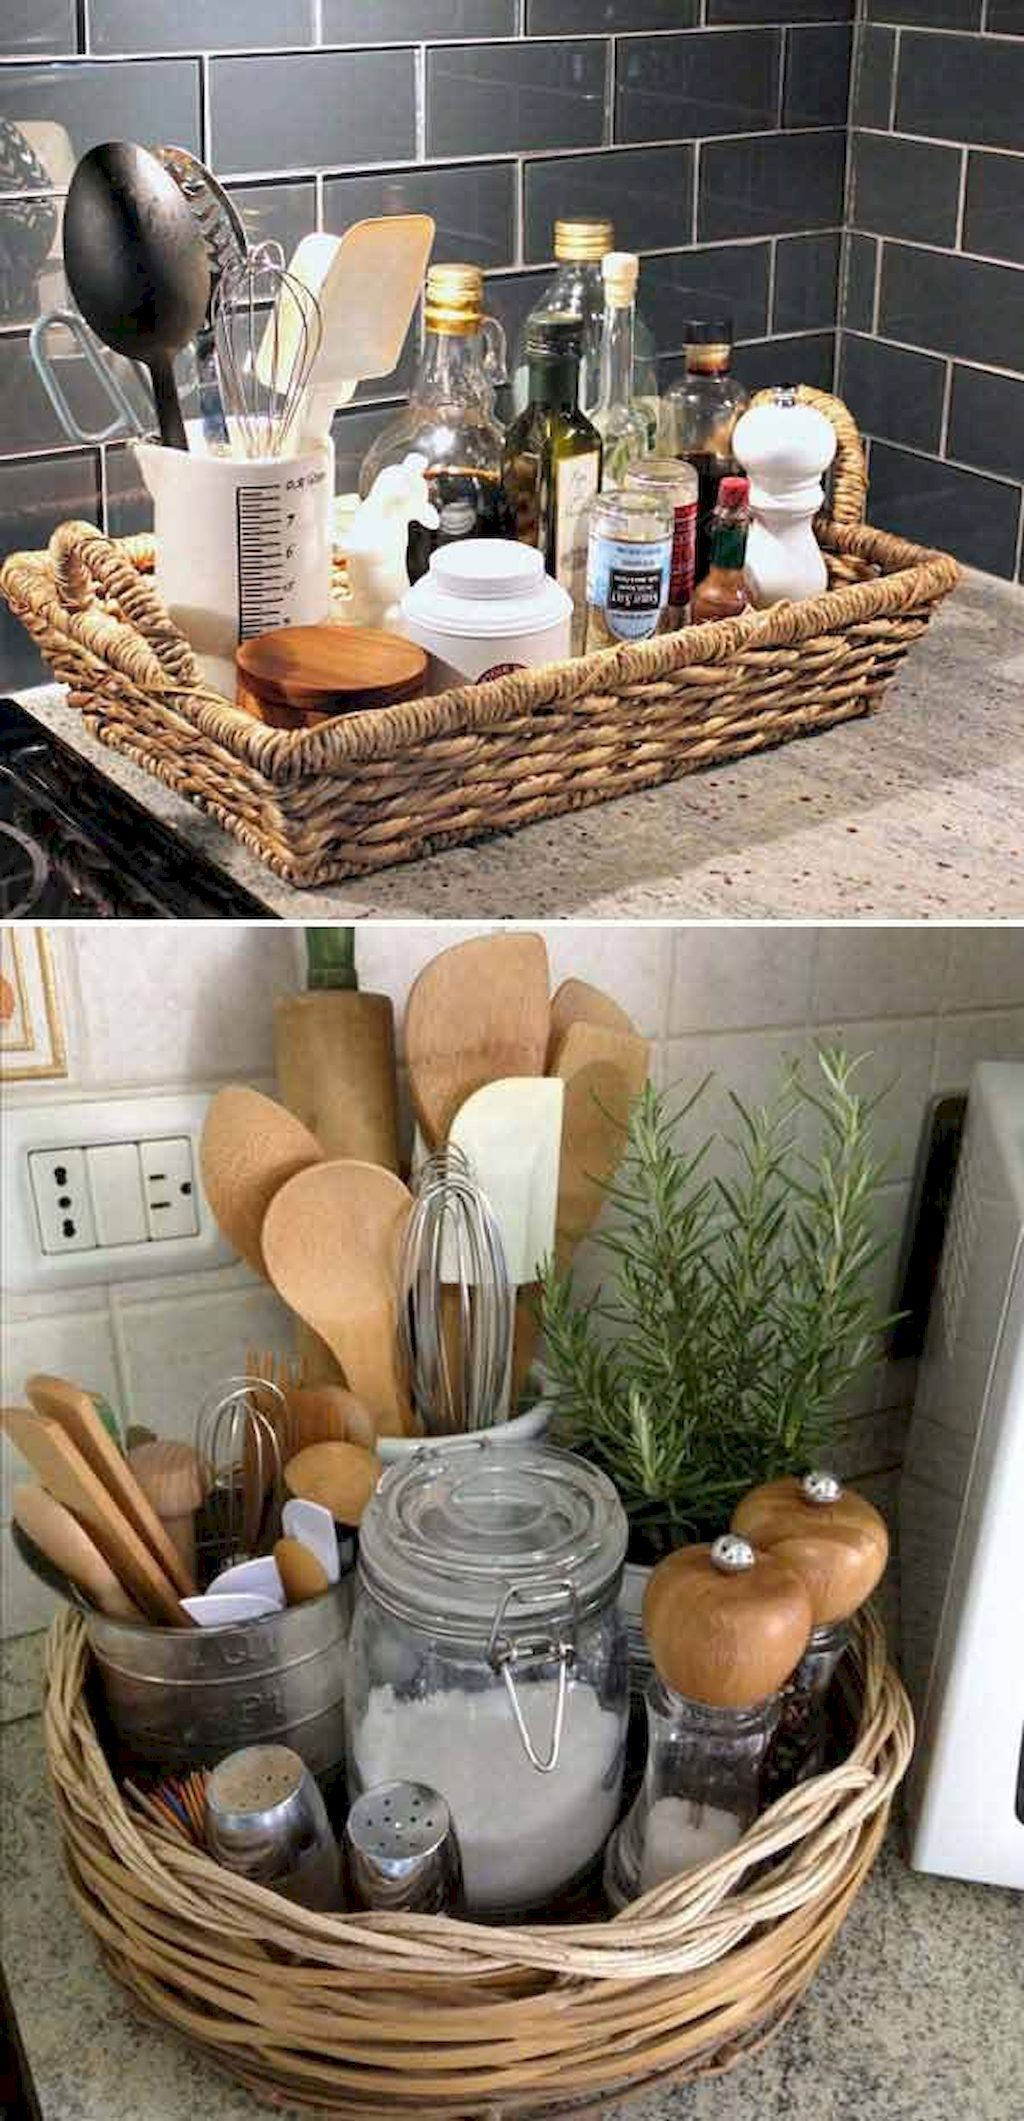 Diy easy and little project for your kitchen organization